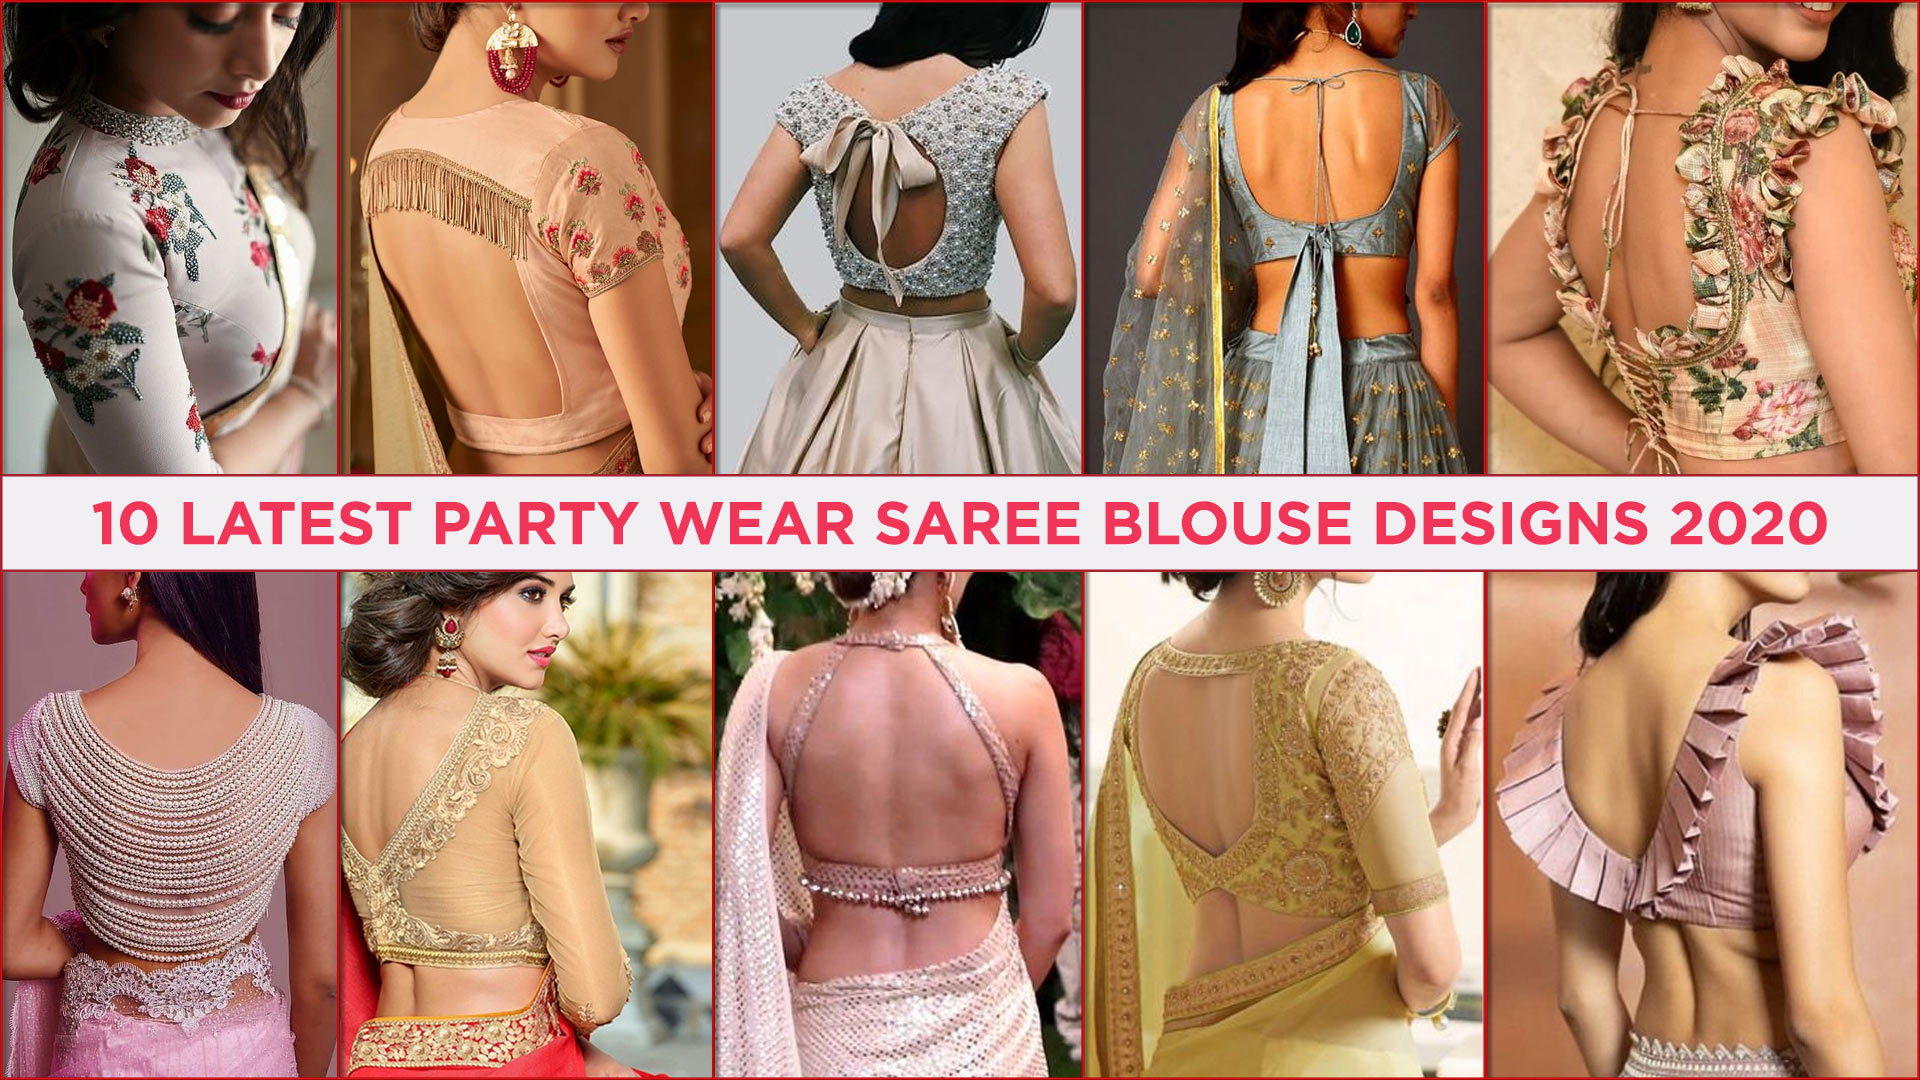 10 Latest Party Wear Saree Blouse Designs